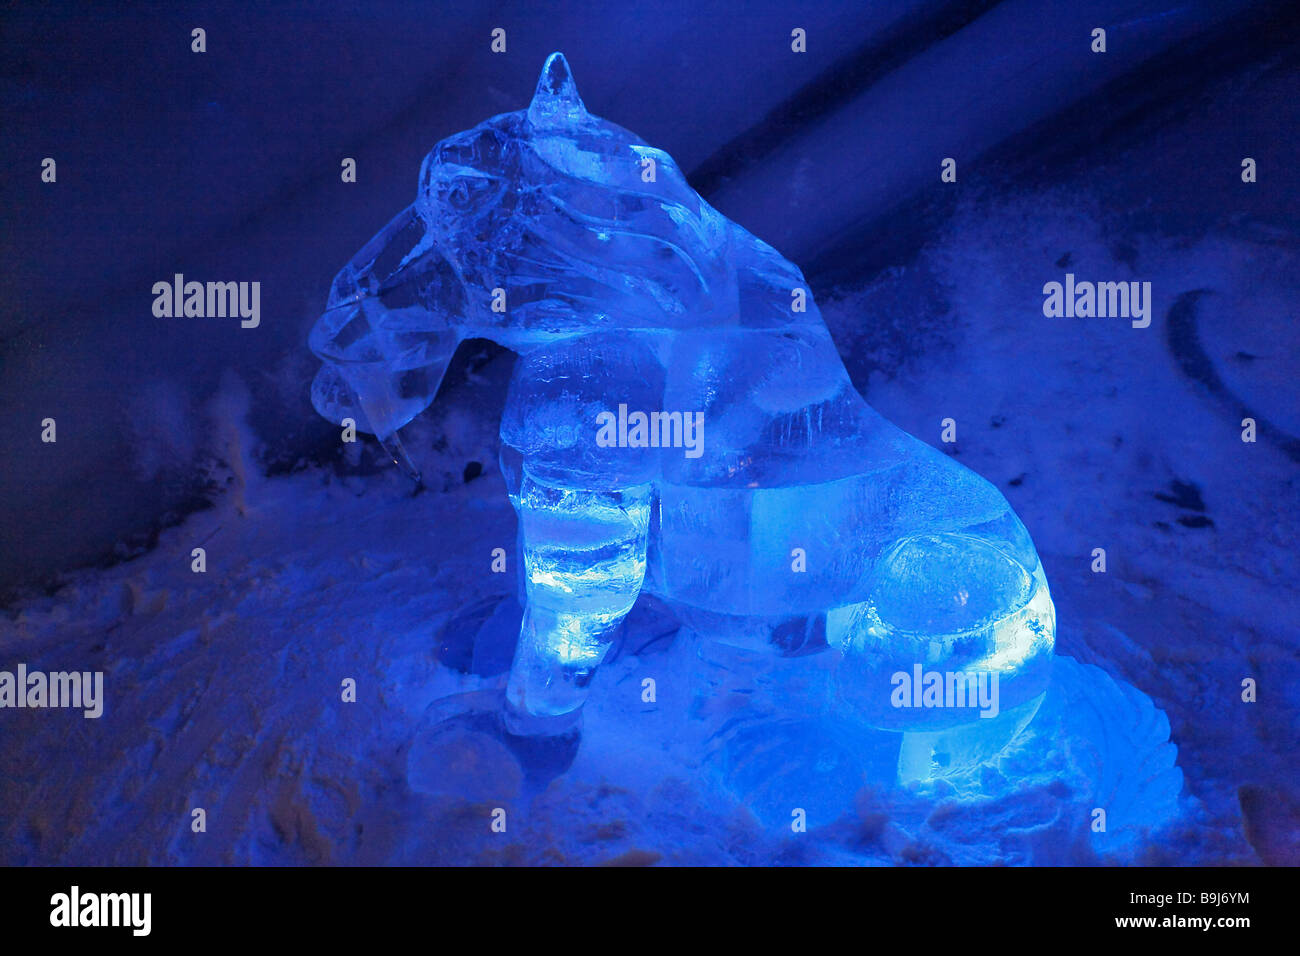 Ice sculpture from 'Ice Age' in the Dachstein Ice Palace, Ramsau, Styria, Austria, Europe - Stock Image